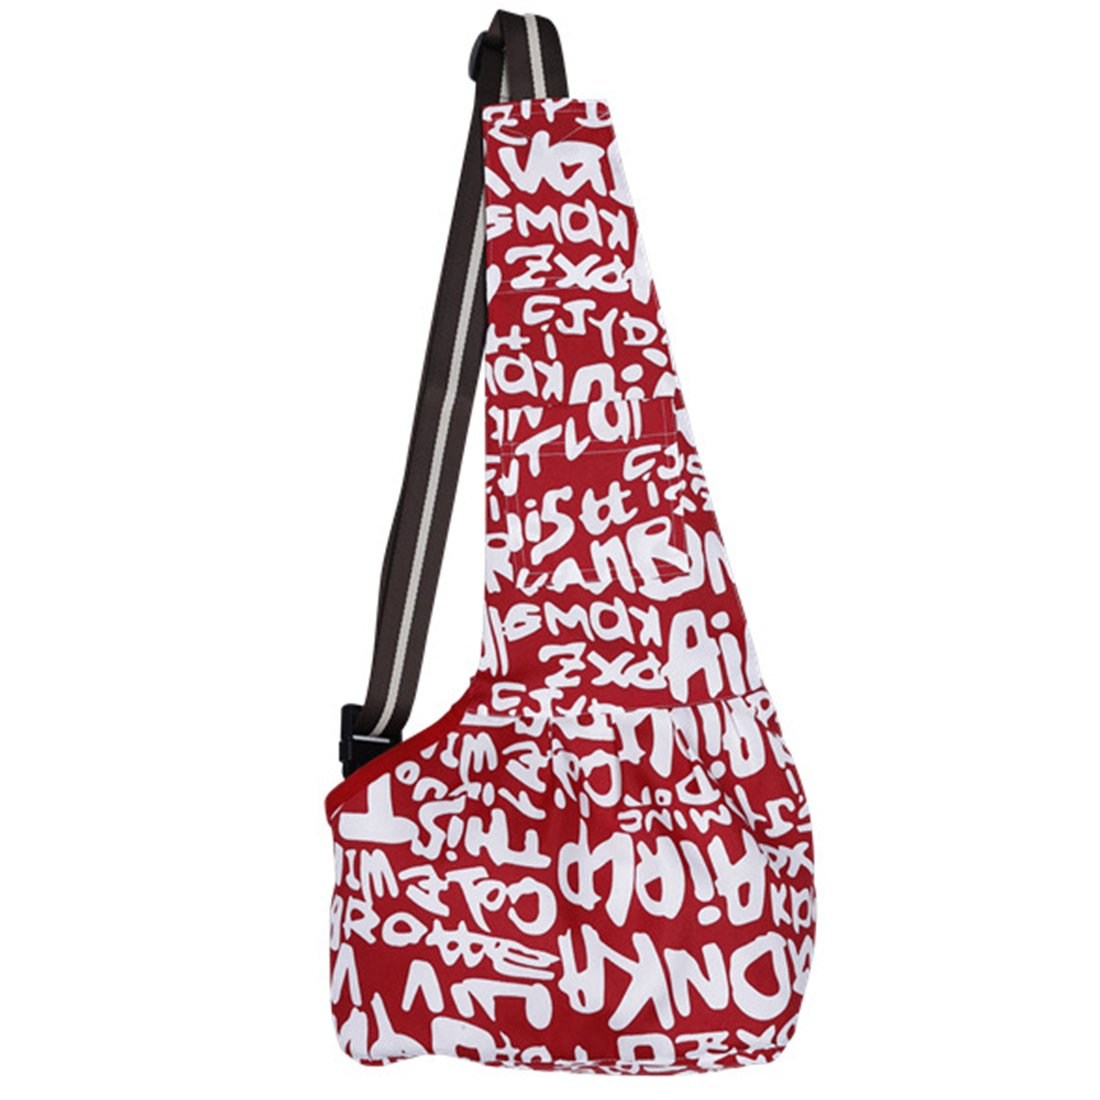 Lanpet Pets Travel Sling Dog Cat Single Shoulder Bag Outdoor Carrier Bag Oxford Fabric S01 (Medium, Red Letters) by Lanpet (Image #1)